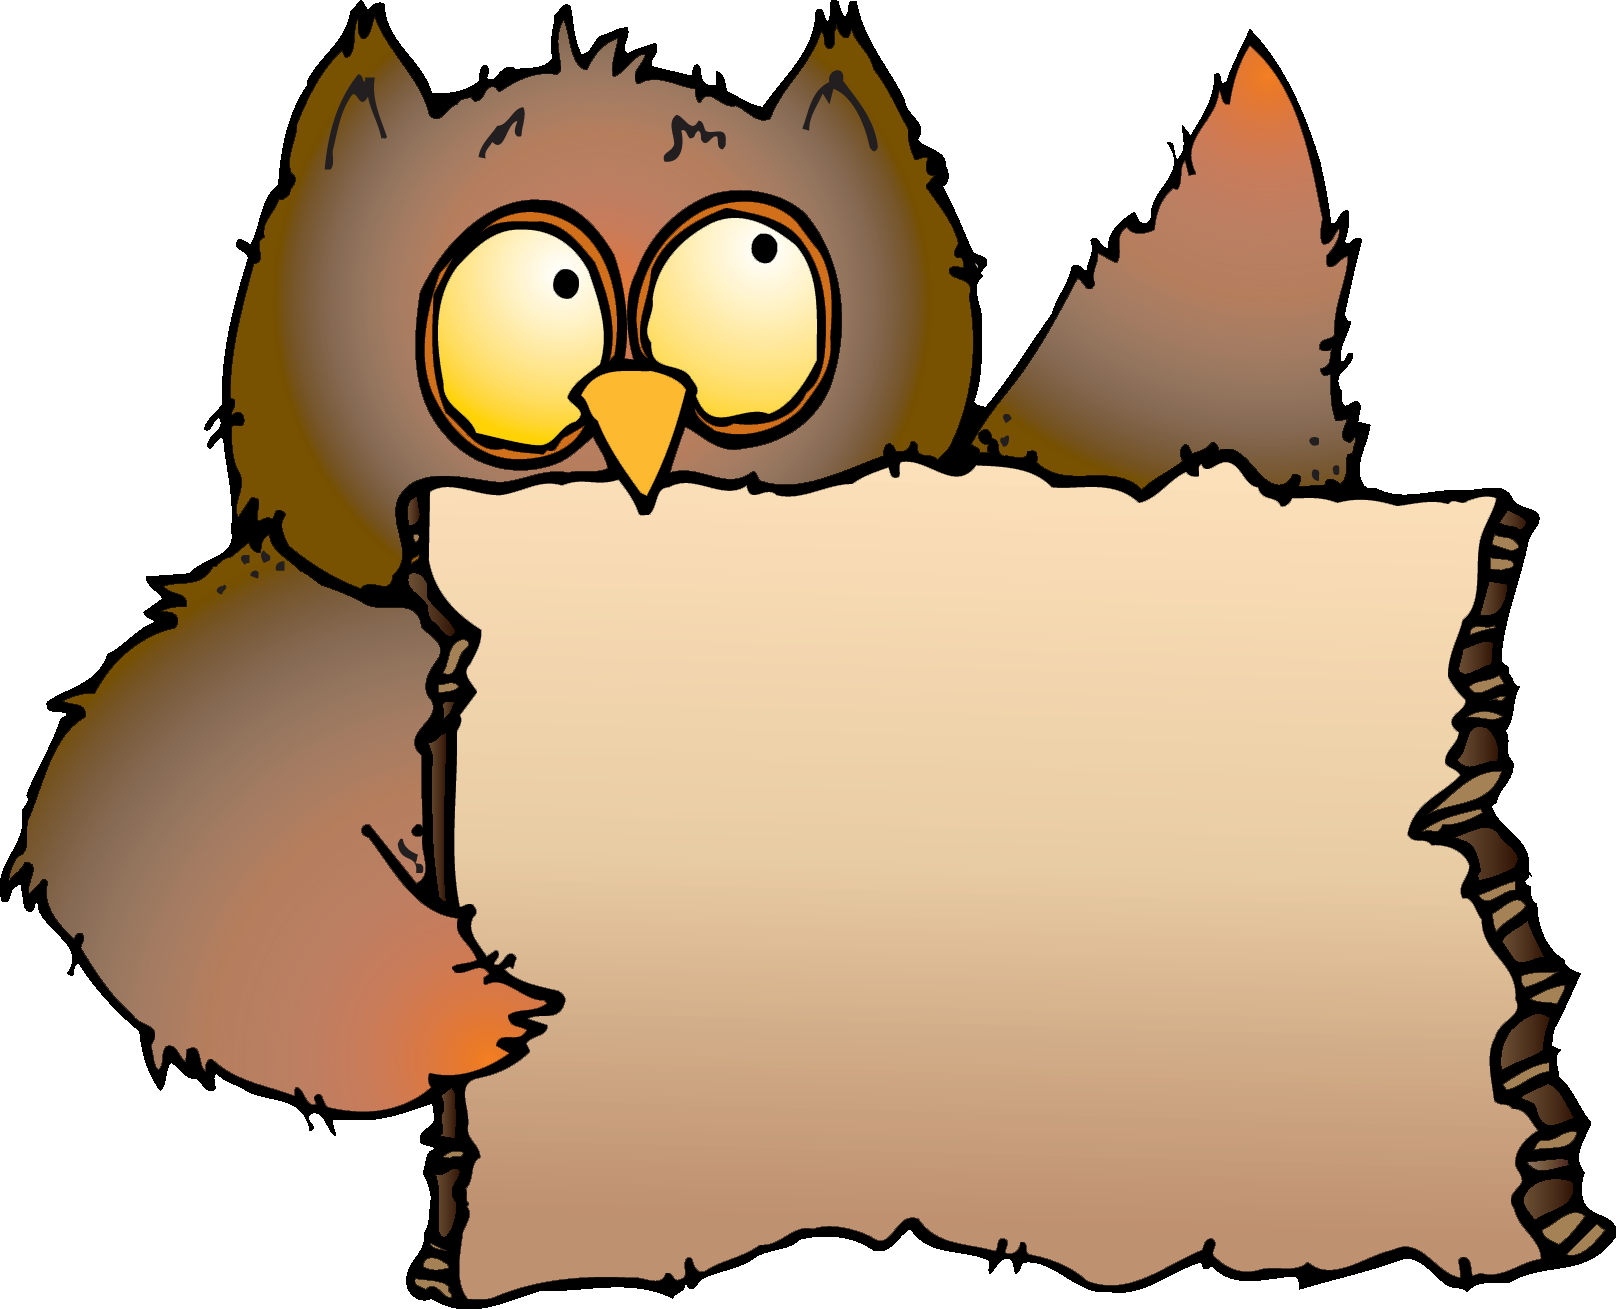 Missions clipart greeter. News or reviews dj